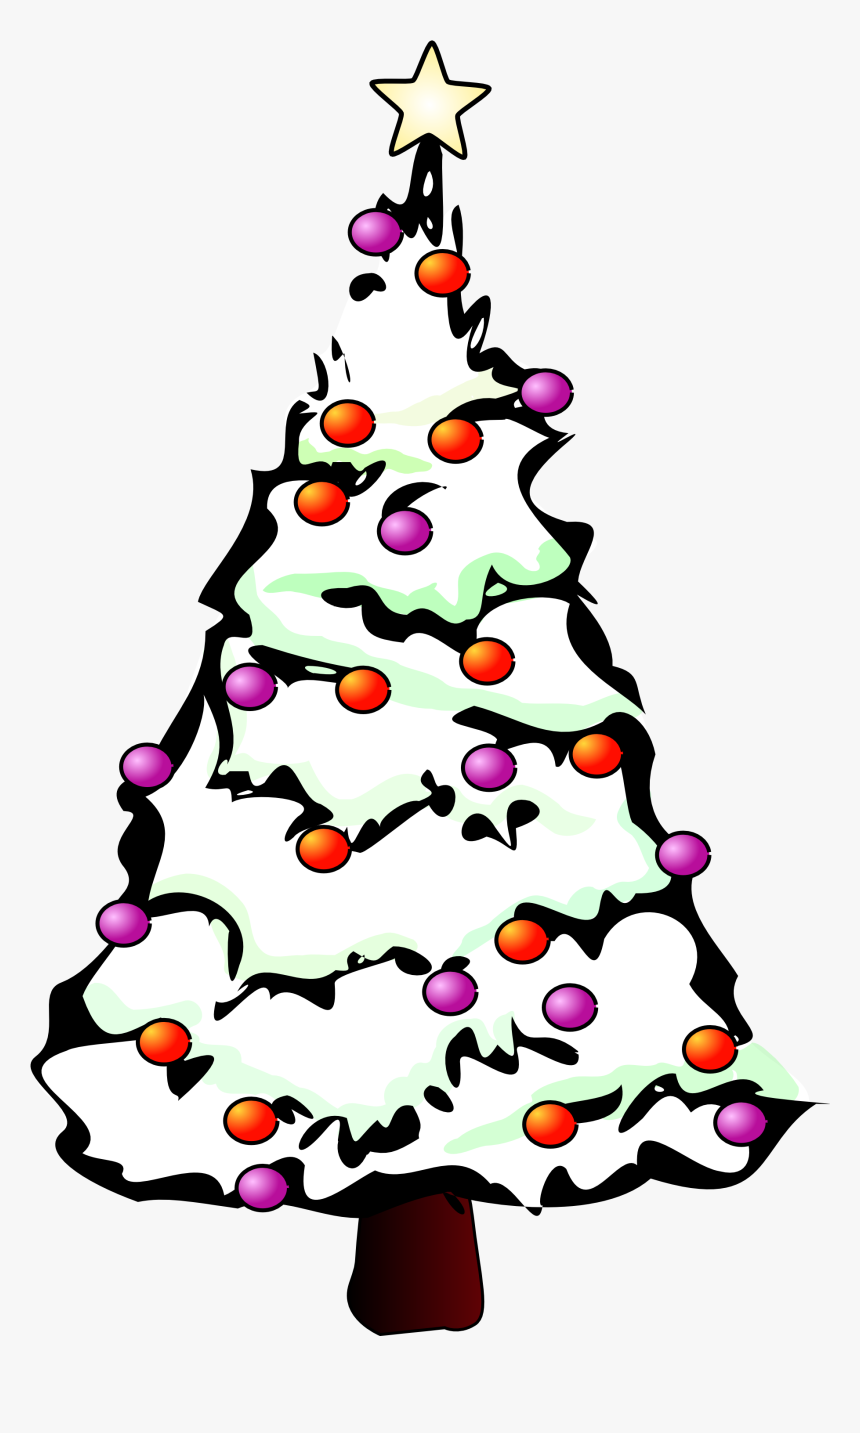 Christmas Tree Black And White Christmas Tree Clipart - Hd Christmas Tree White Background, HD Png Download, Free Download